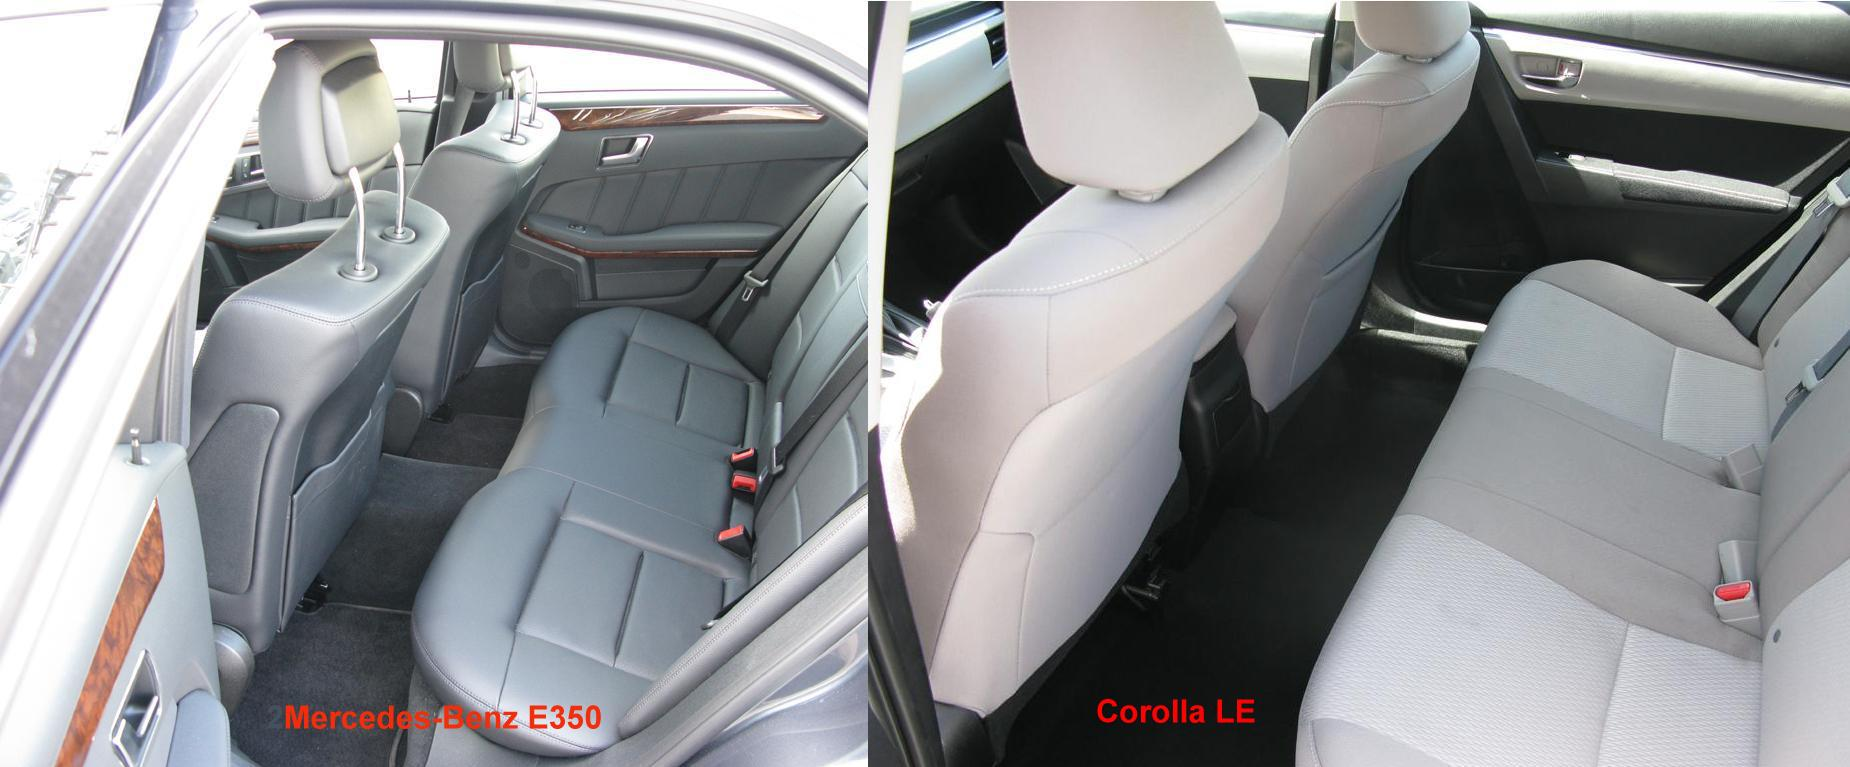 2014_Corolla_VS_E350_Review